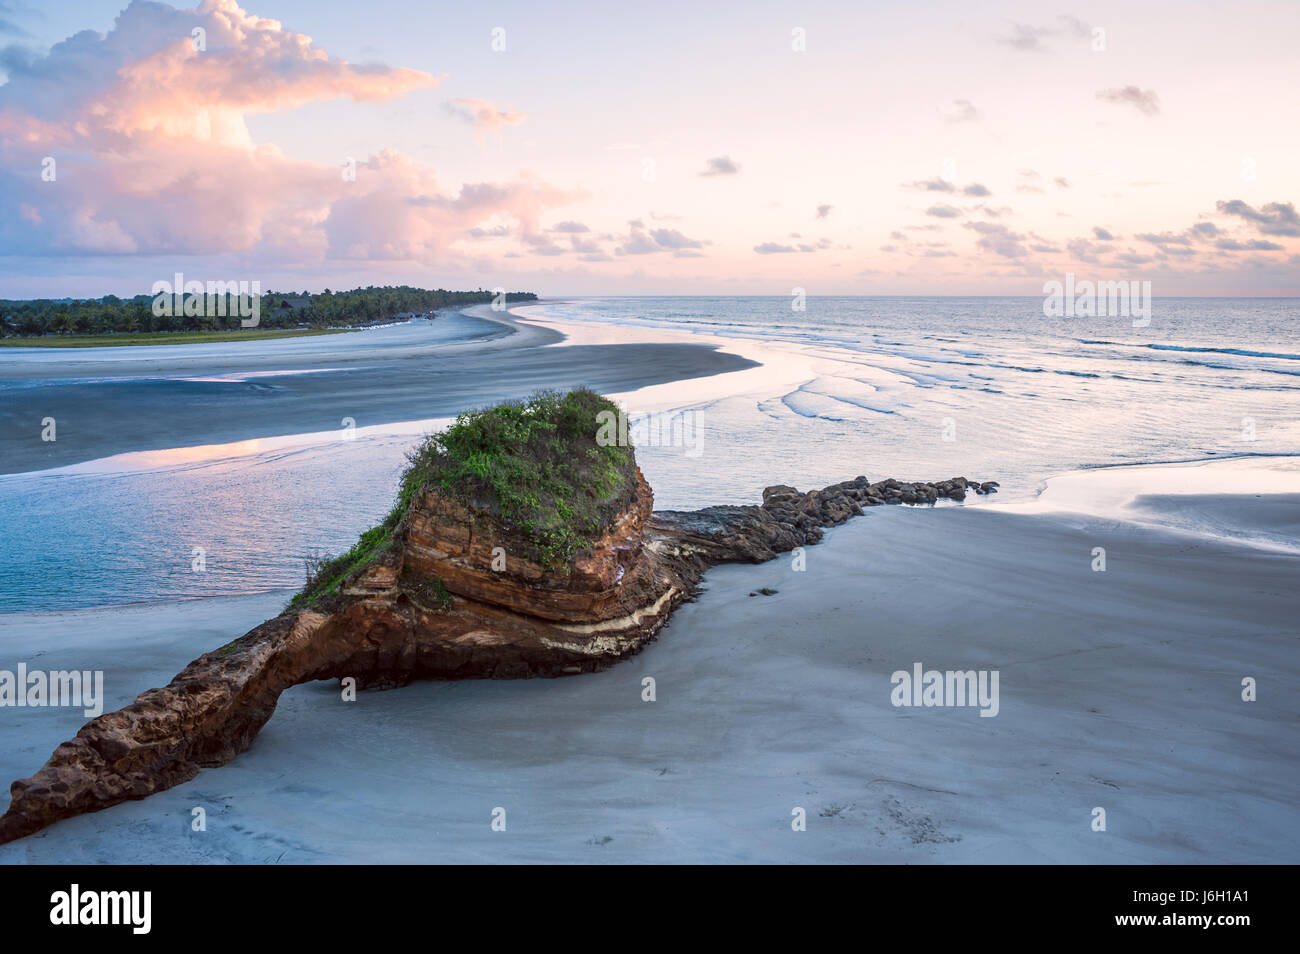 Small charming fishing village of Mompiche, Ecuadorian Pacific coastline - Stock Image